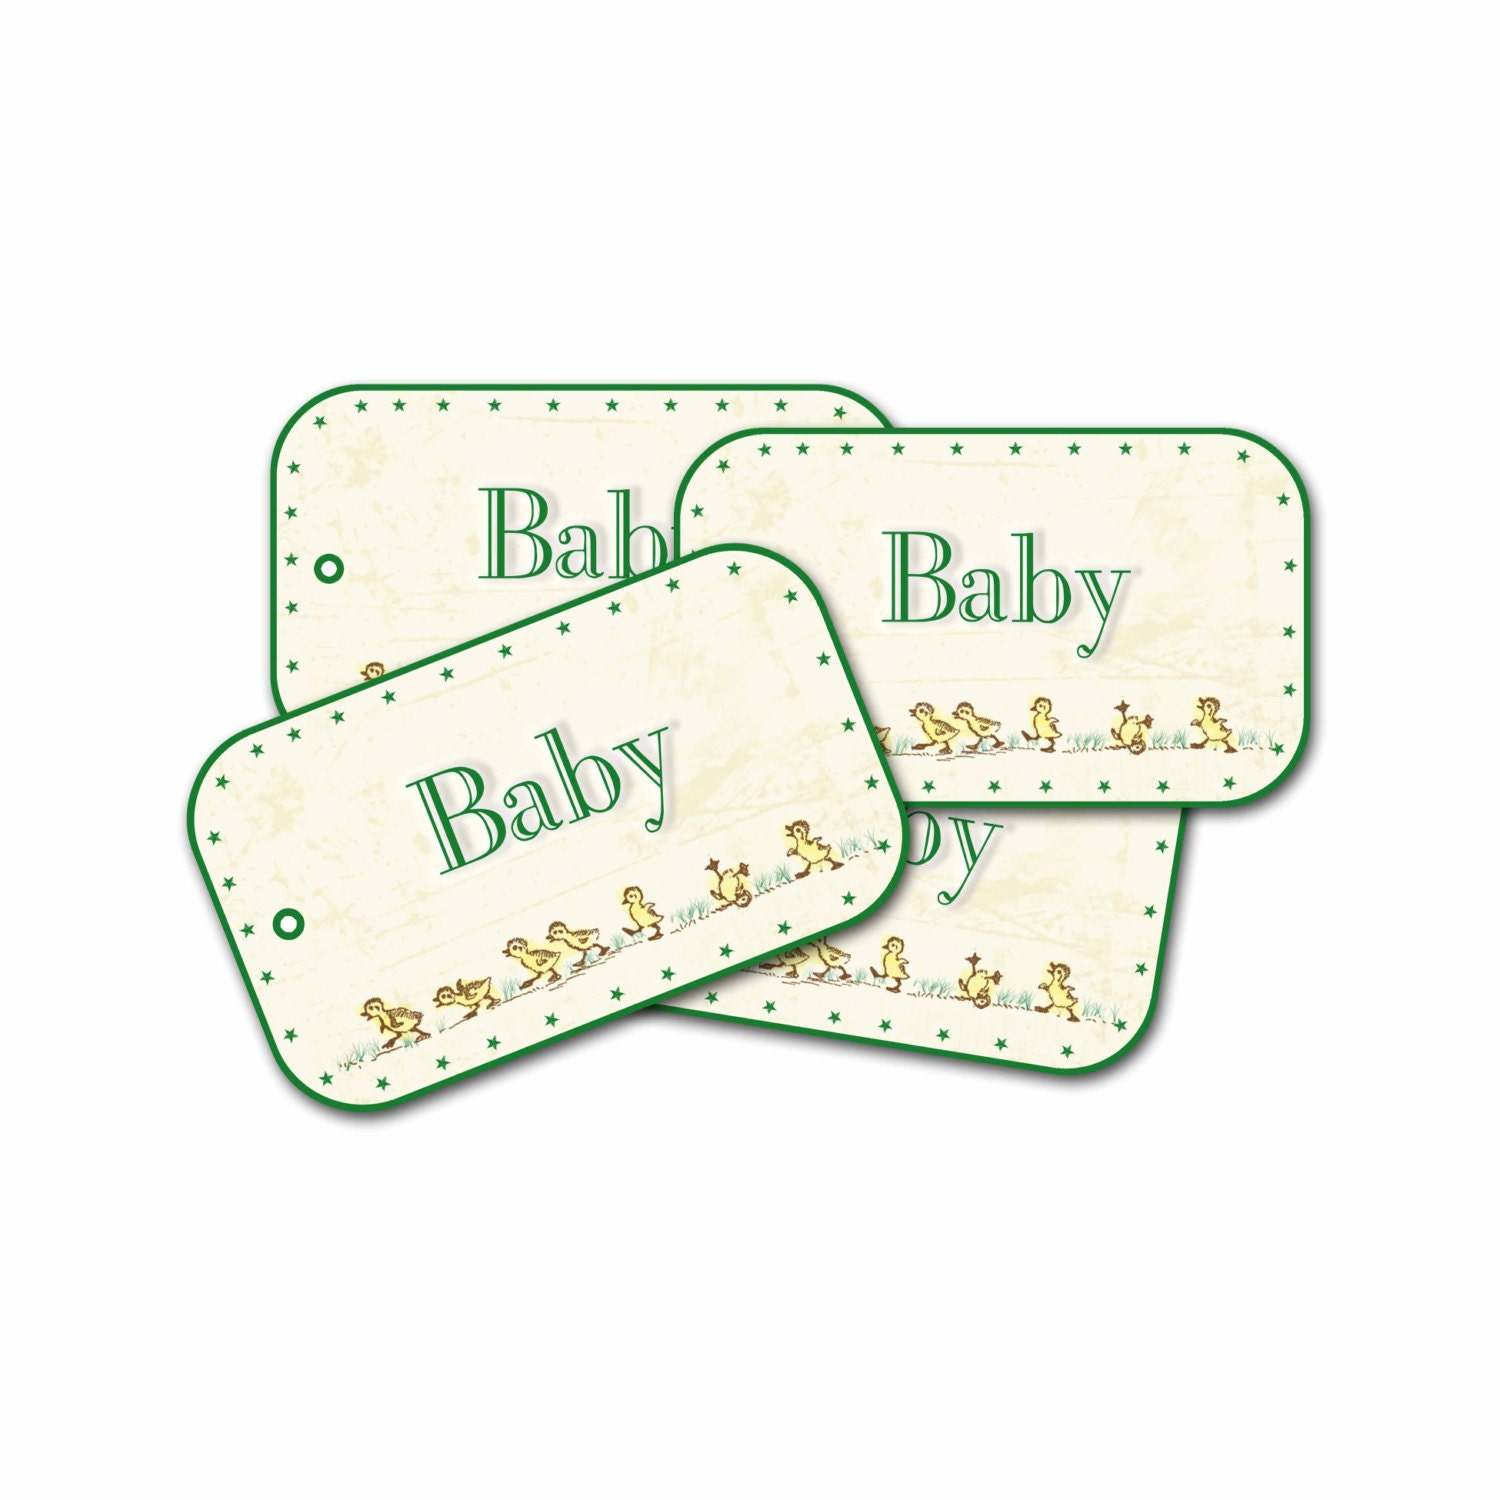 baby duck gift tags baby shower tag newborn gift tags